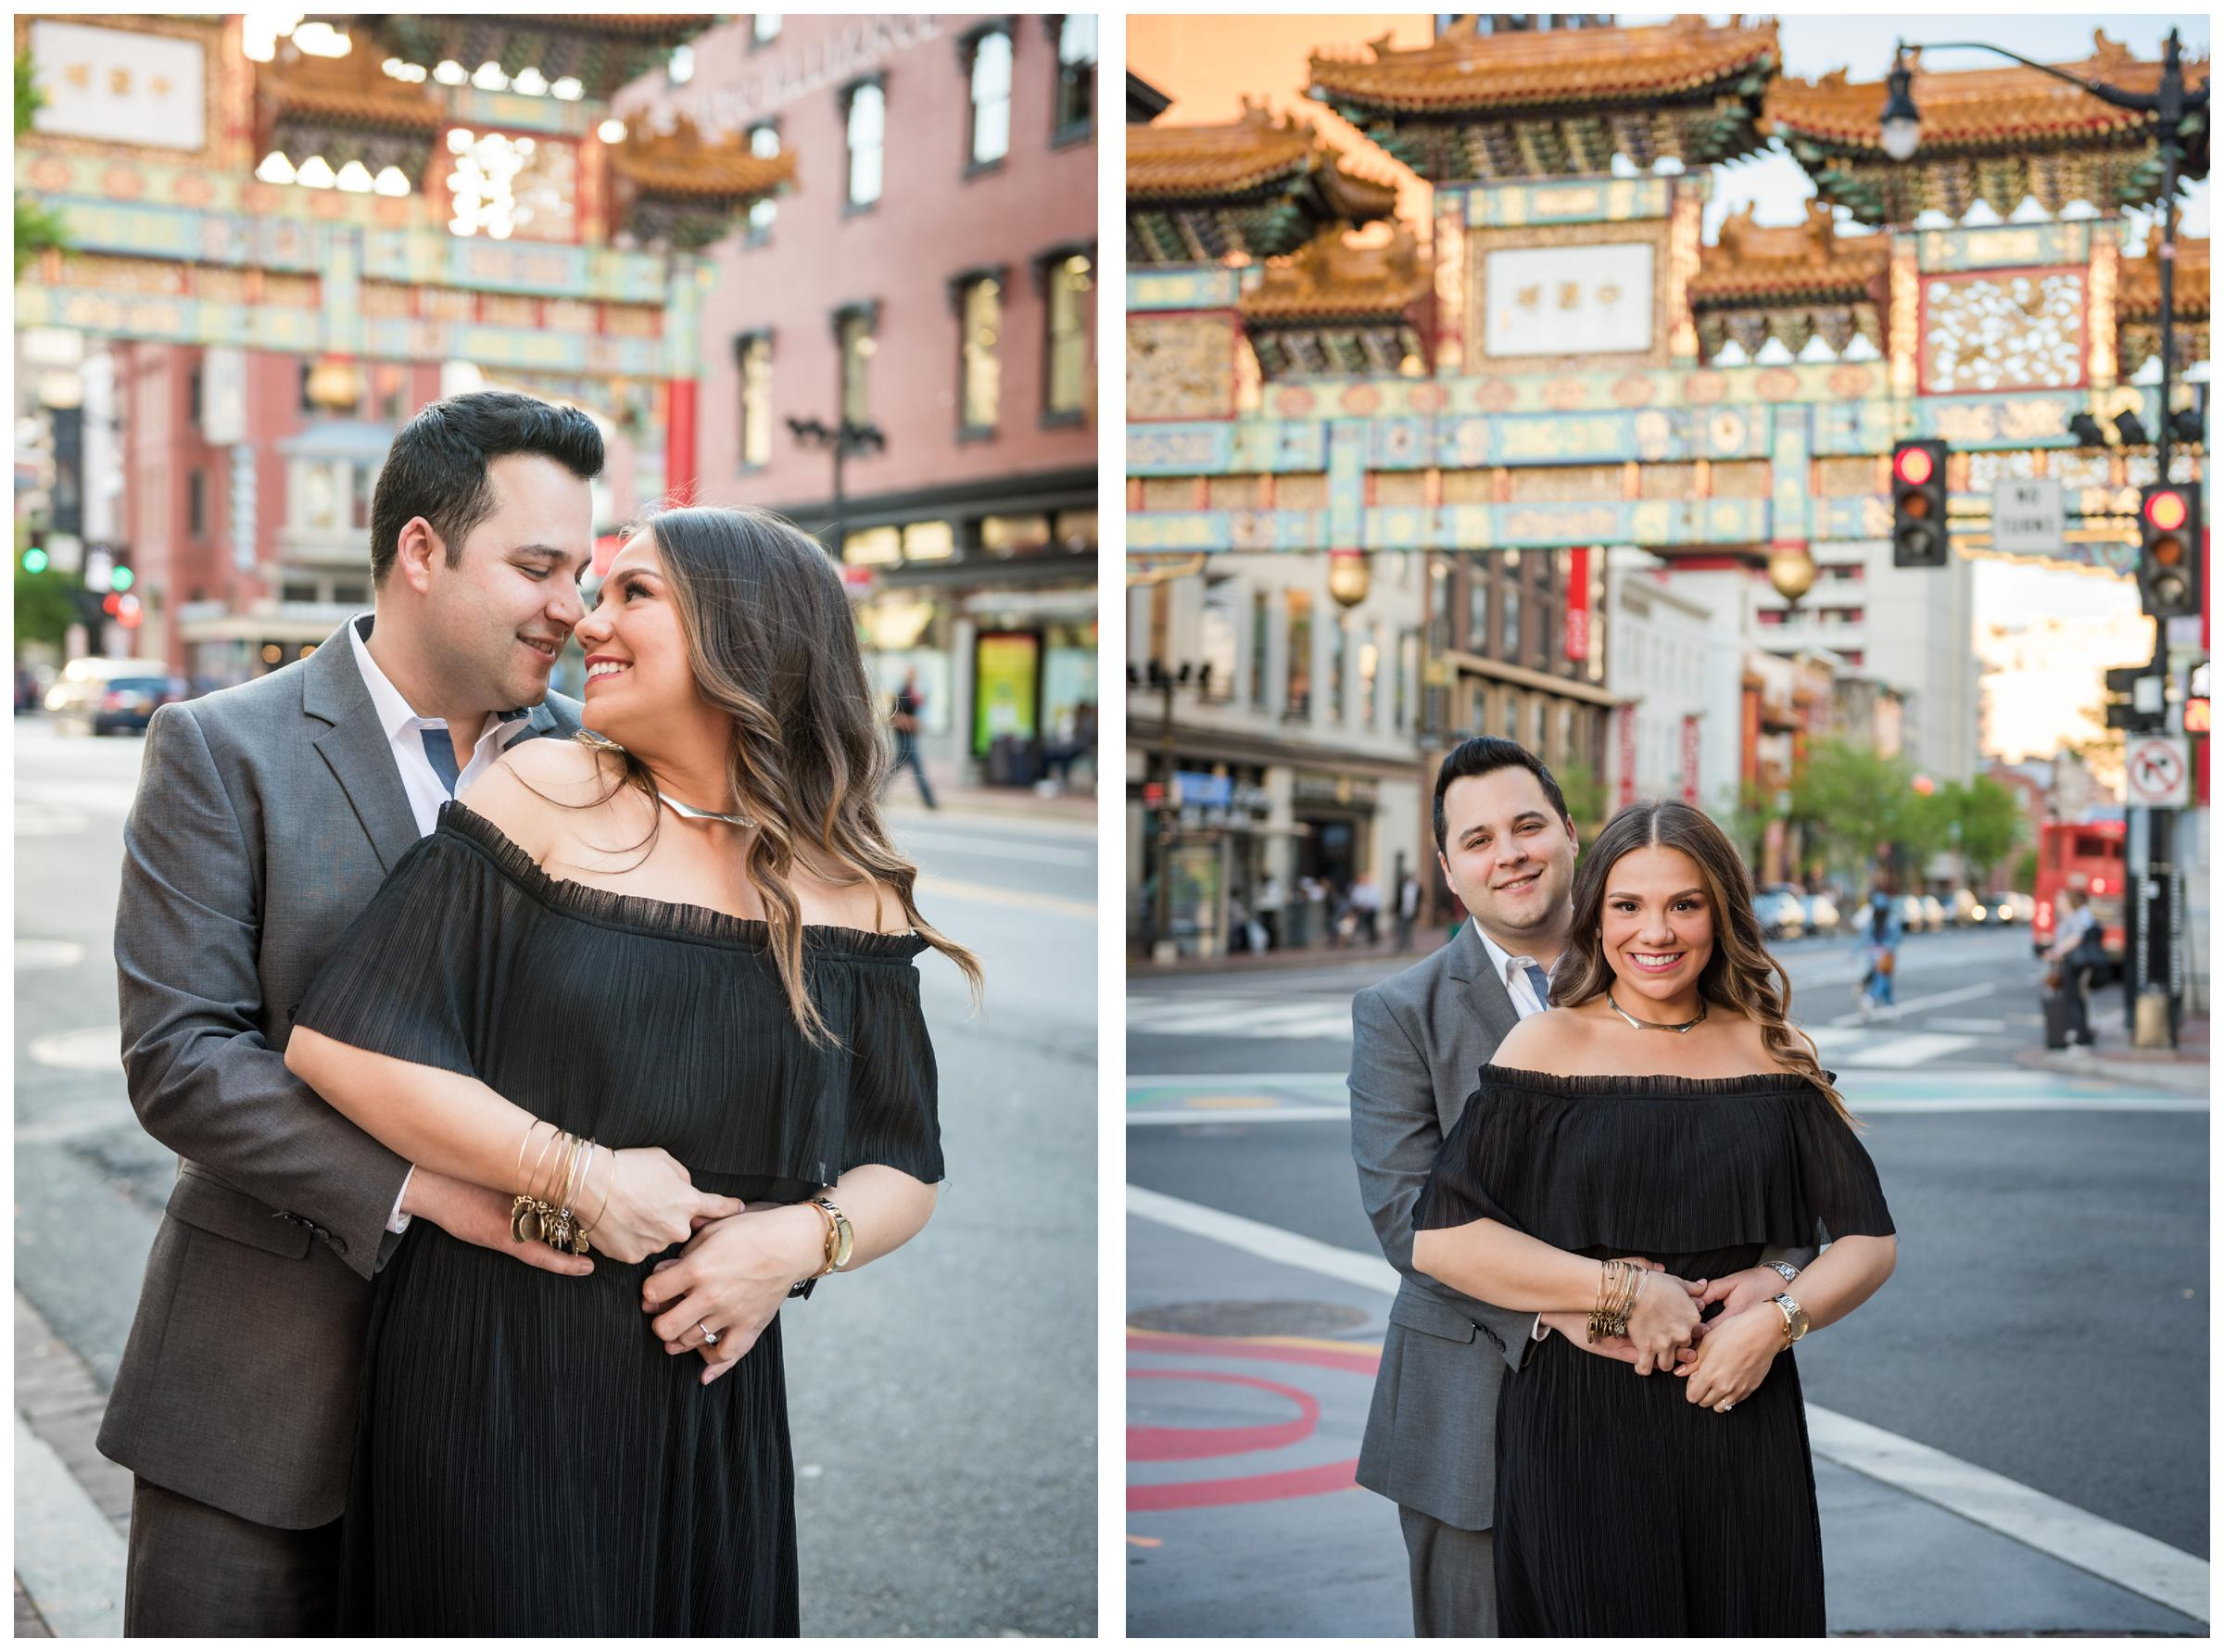 engagement photos at Friendship Archway in Chinatown, Washington DC